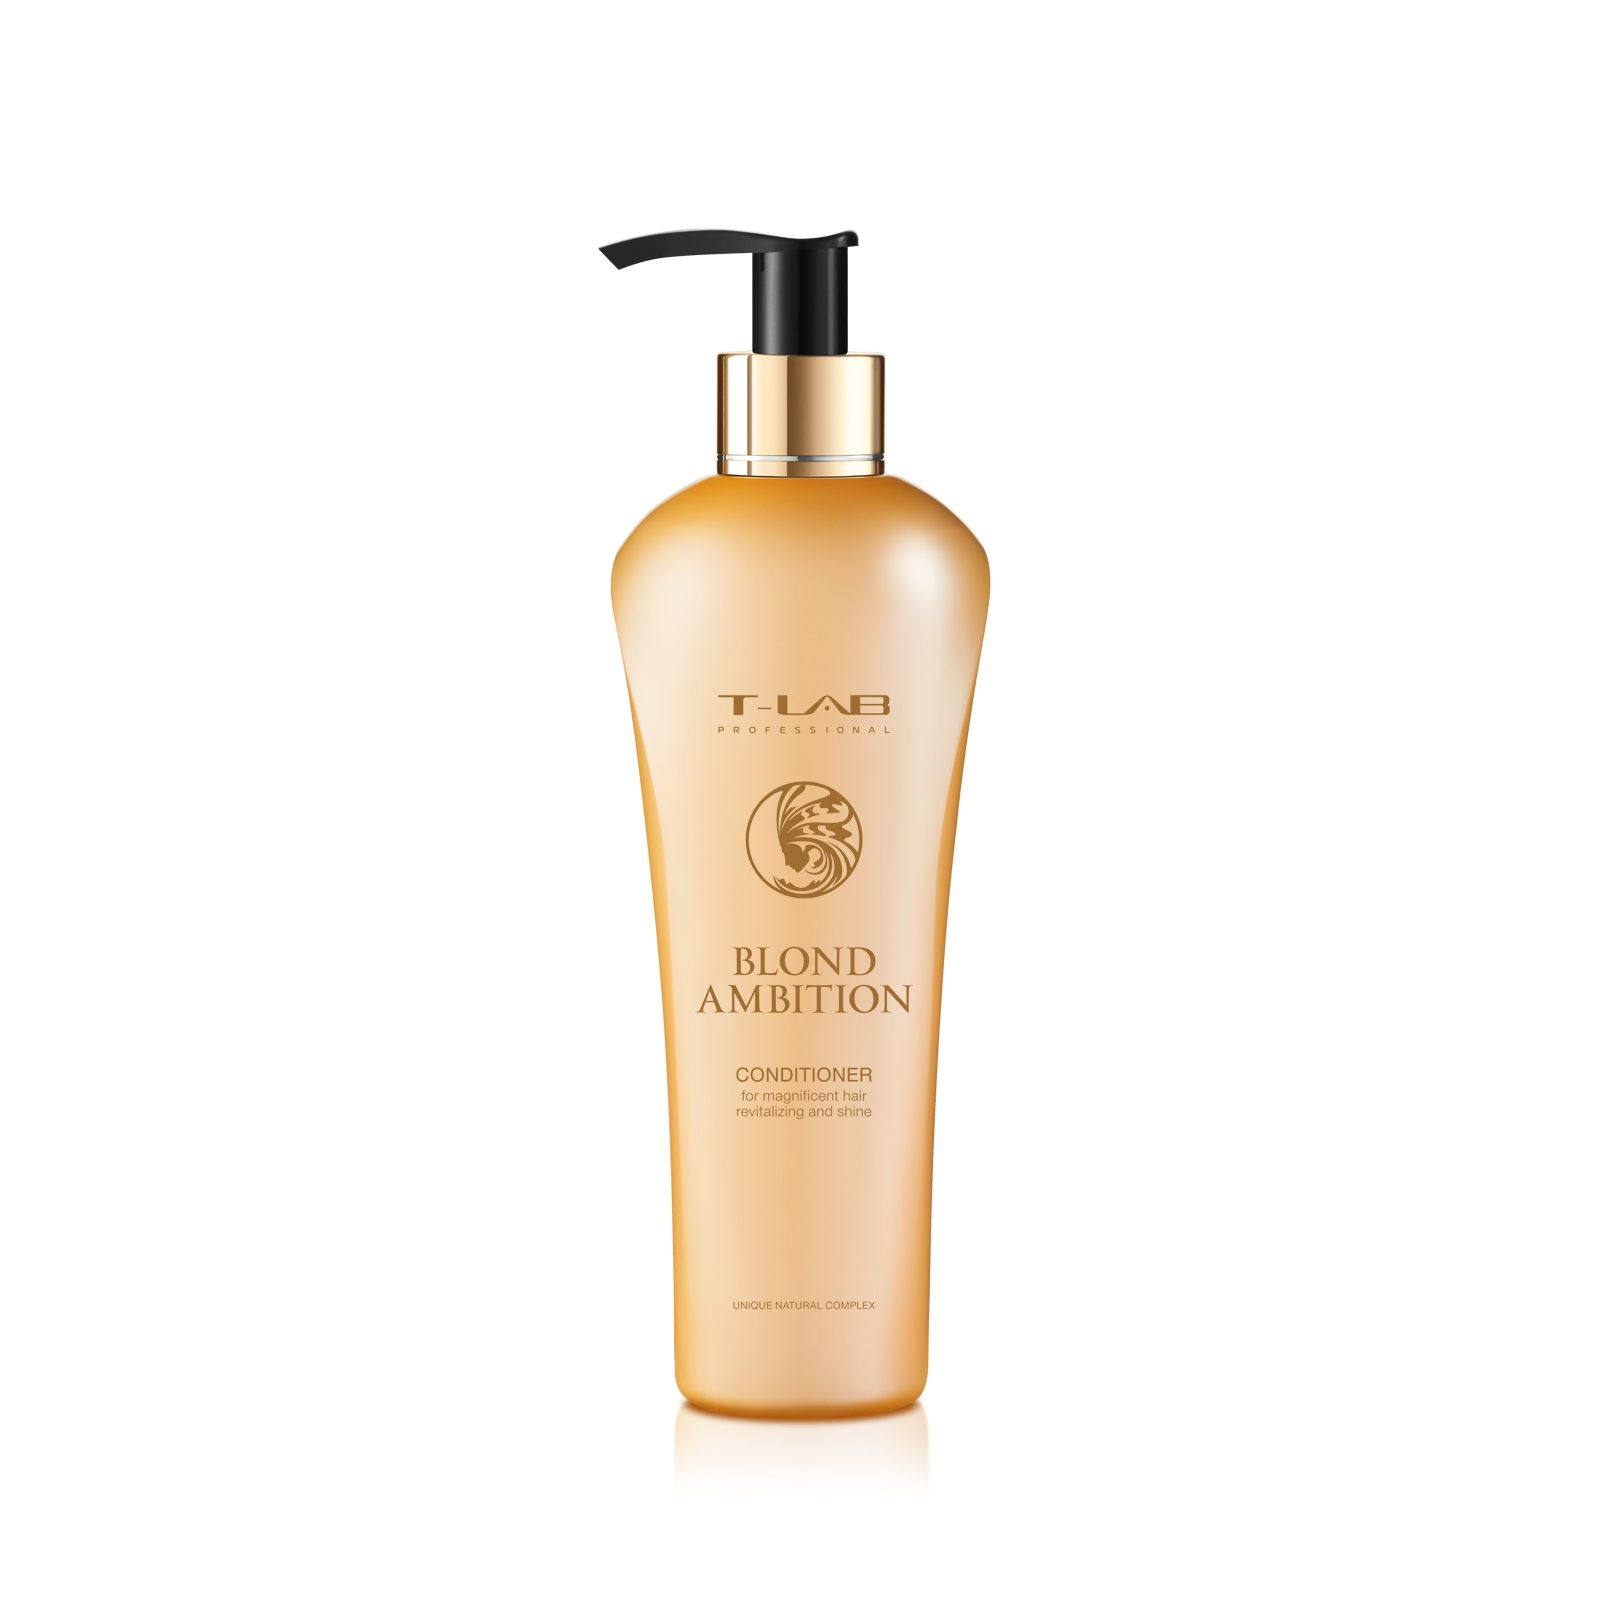 BLOND AMBITION CONDITIONER 250 ml